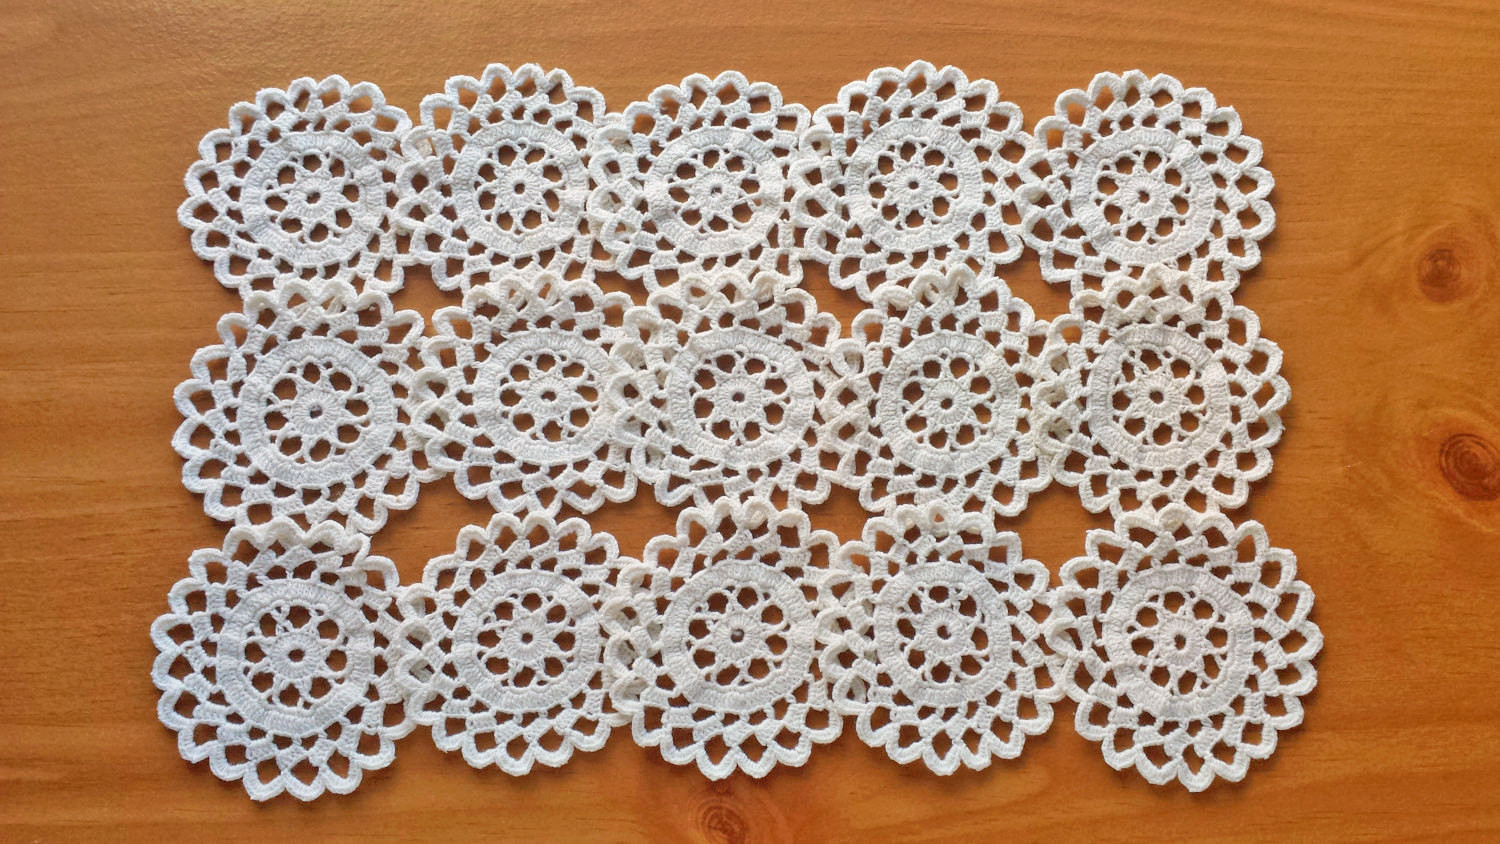 Vintage Crochet Doilies Inspirational Vintage Crochet Doilies Small Craft Doilies Set Of 15 Of New 45 Models Vintage Crochet Doilies